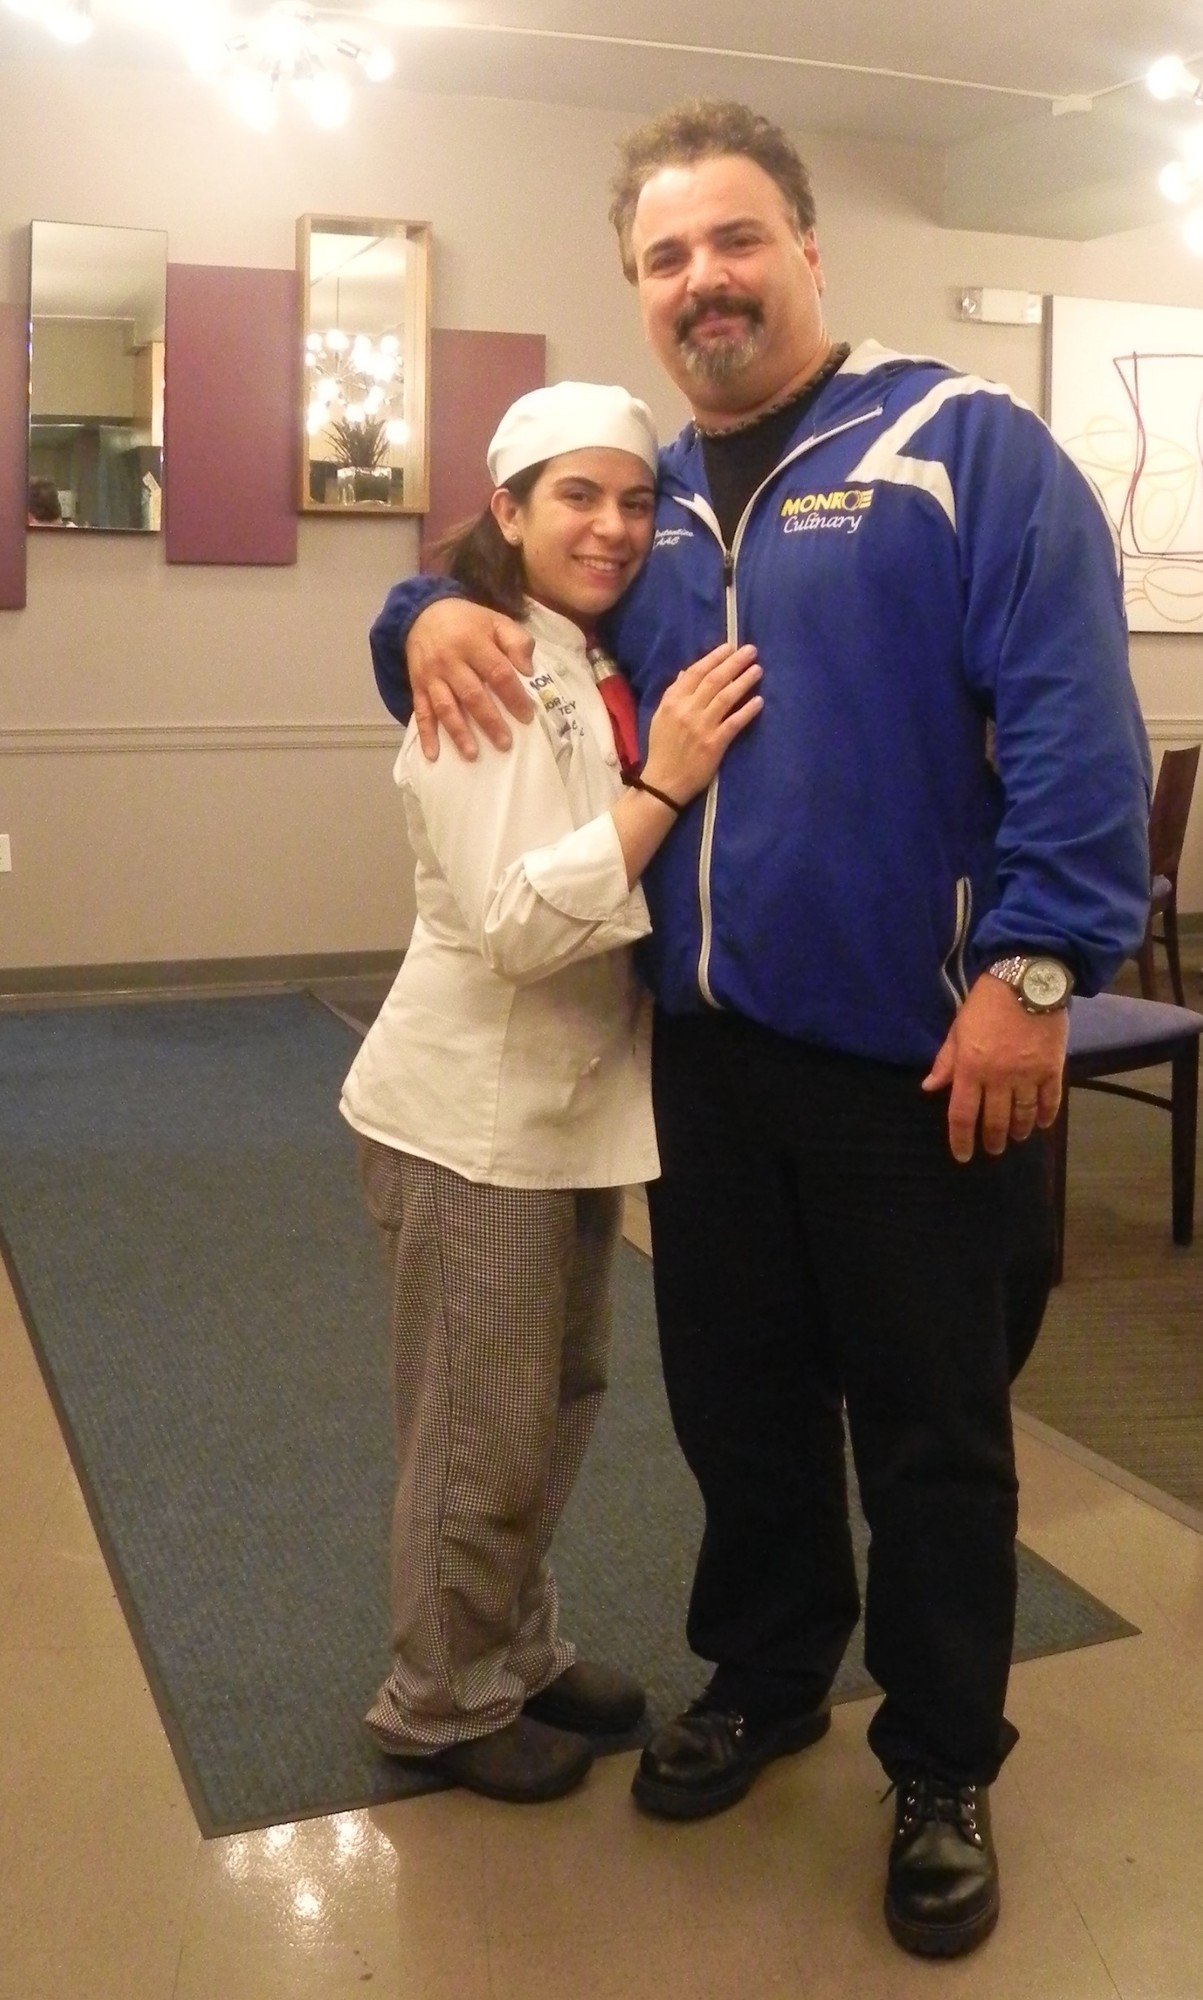 Dr. Frank Constantino has mentored Rossella Cangialosi since he met her five years ago, when he judged her cooking at an American Culinary Federation competition at Westbury BOCES.